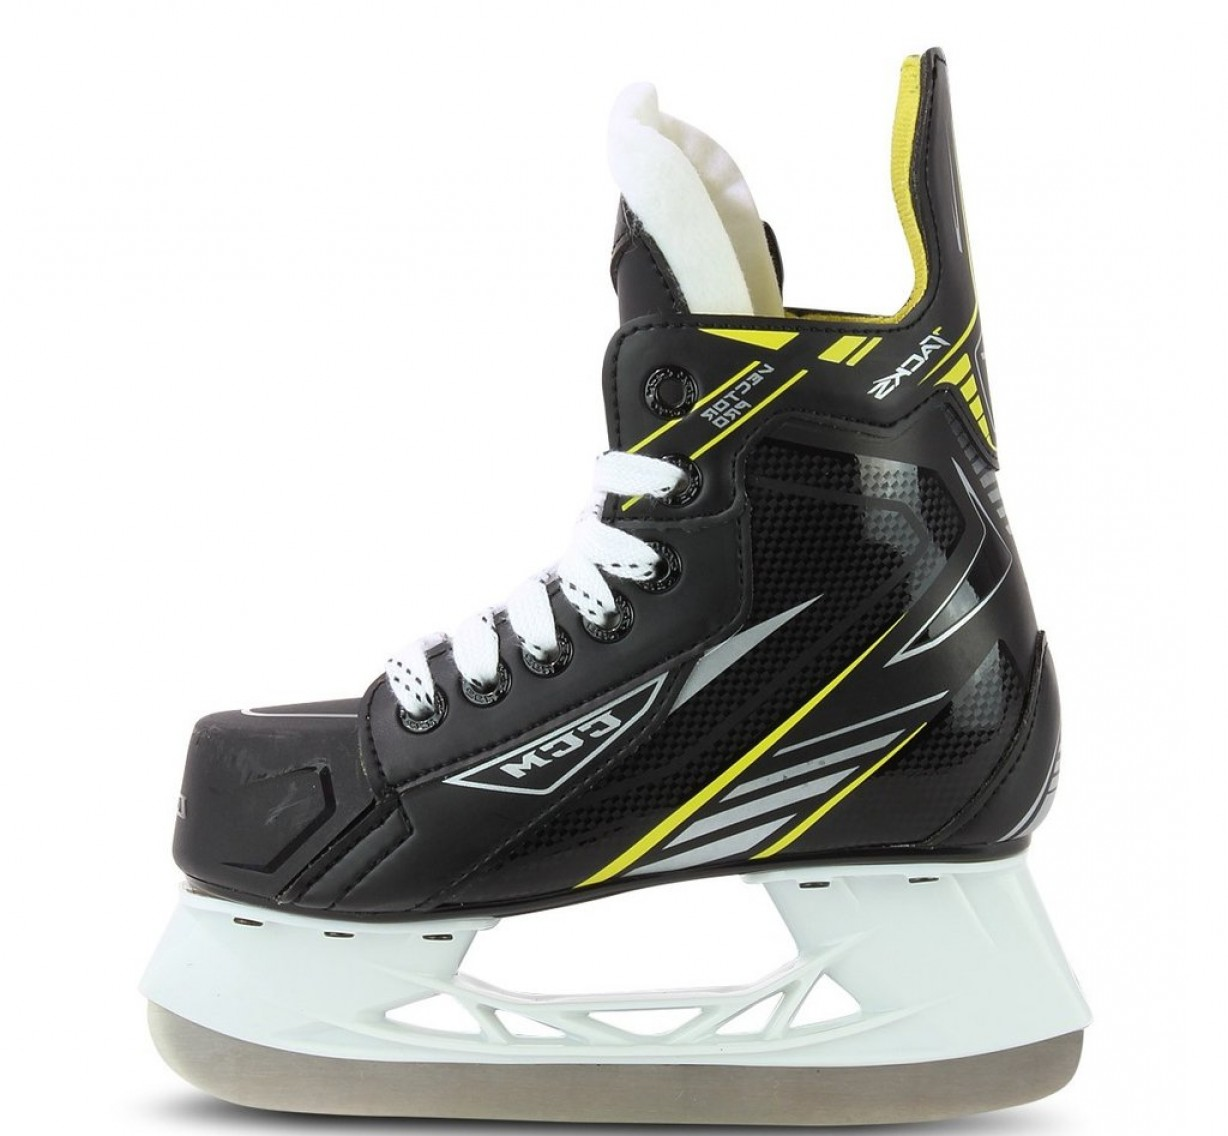 CCM Vector Pro: Ccm Tacks Vector Pro Youth Skate